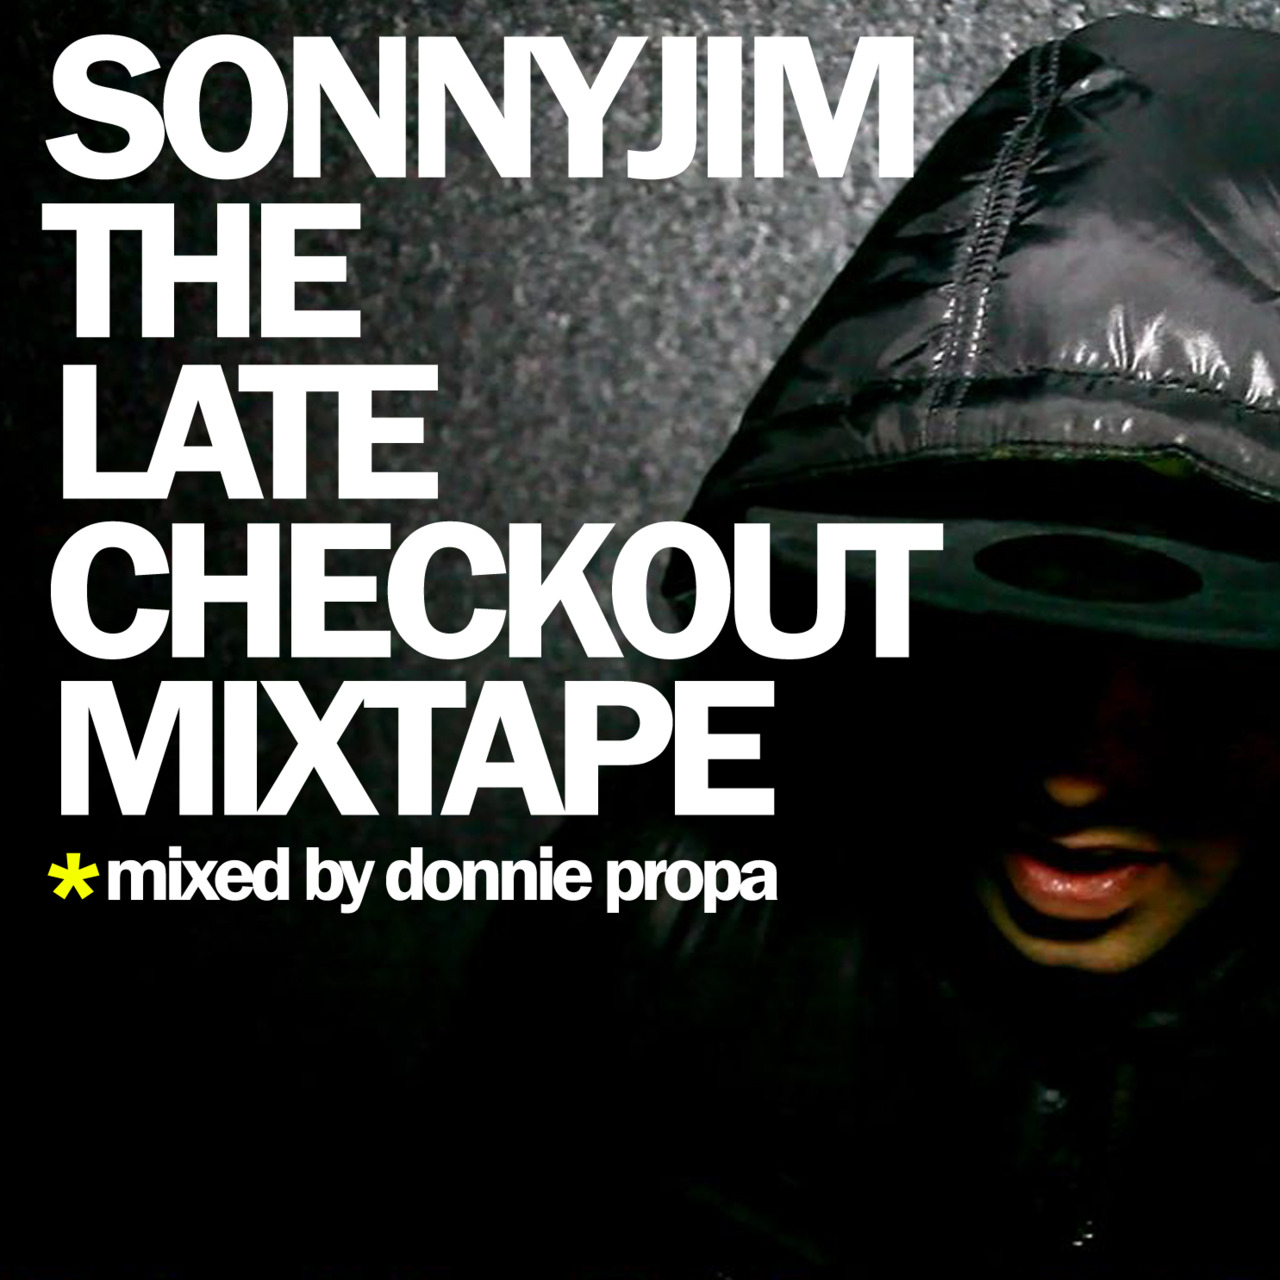 The Late Checkout Mixtape In case you some how managed to miss this, Sonnyjim and Donnie Propa have collaborated on a mixtape, available for a generously small fee over on bandcamp.  The Late Checkout Mixtape is a compilation of many tracks from Sonnyjim's extensive back catalog with some recent releases and a few exclusives thrown in for good measure too.  It's so well put together, we are really looking forward to seeing Donnie Propa Live and in person this coming Saturday at Holdin' Court! You can find The Late Checkout mixed by Donnie Propa here: http://sonnyjim.bandcamp.com